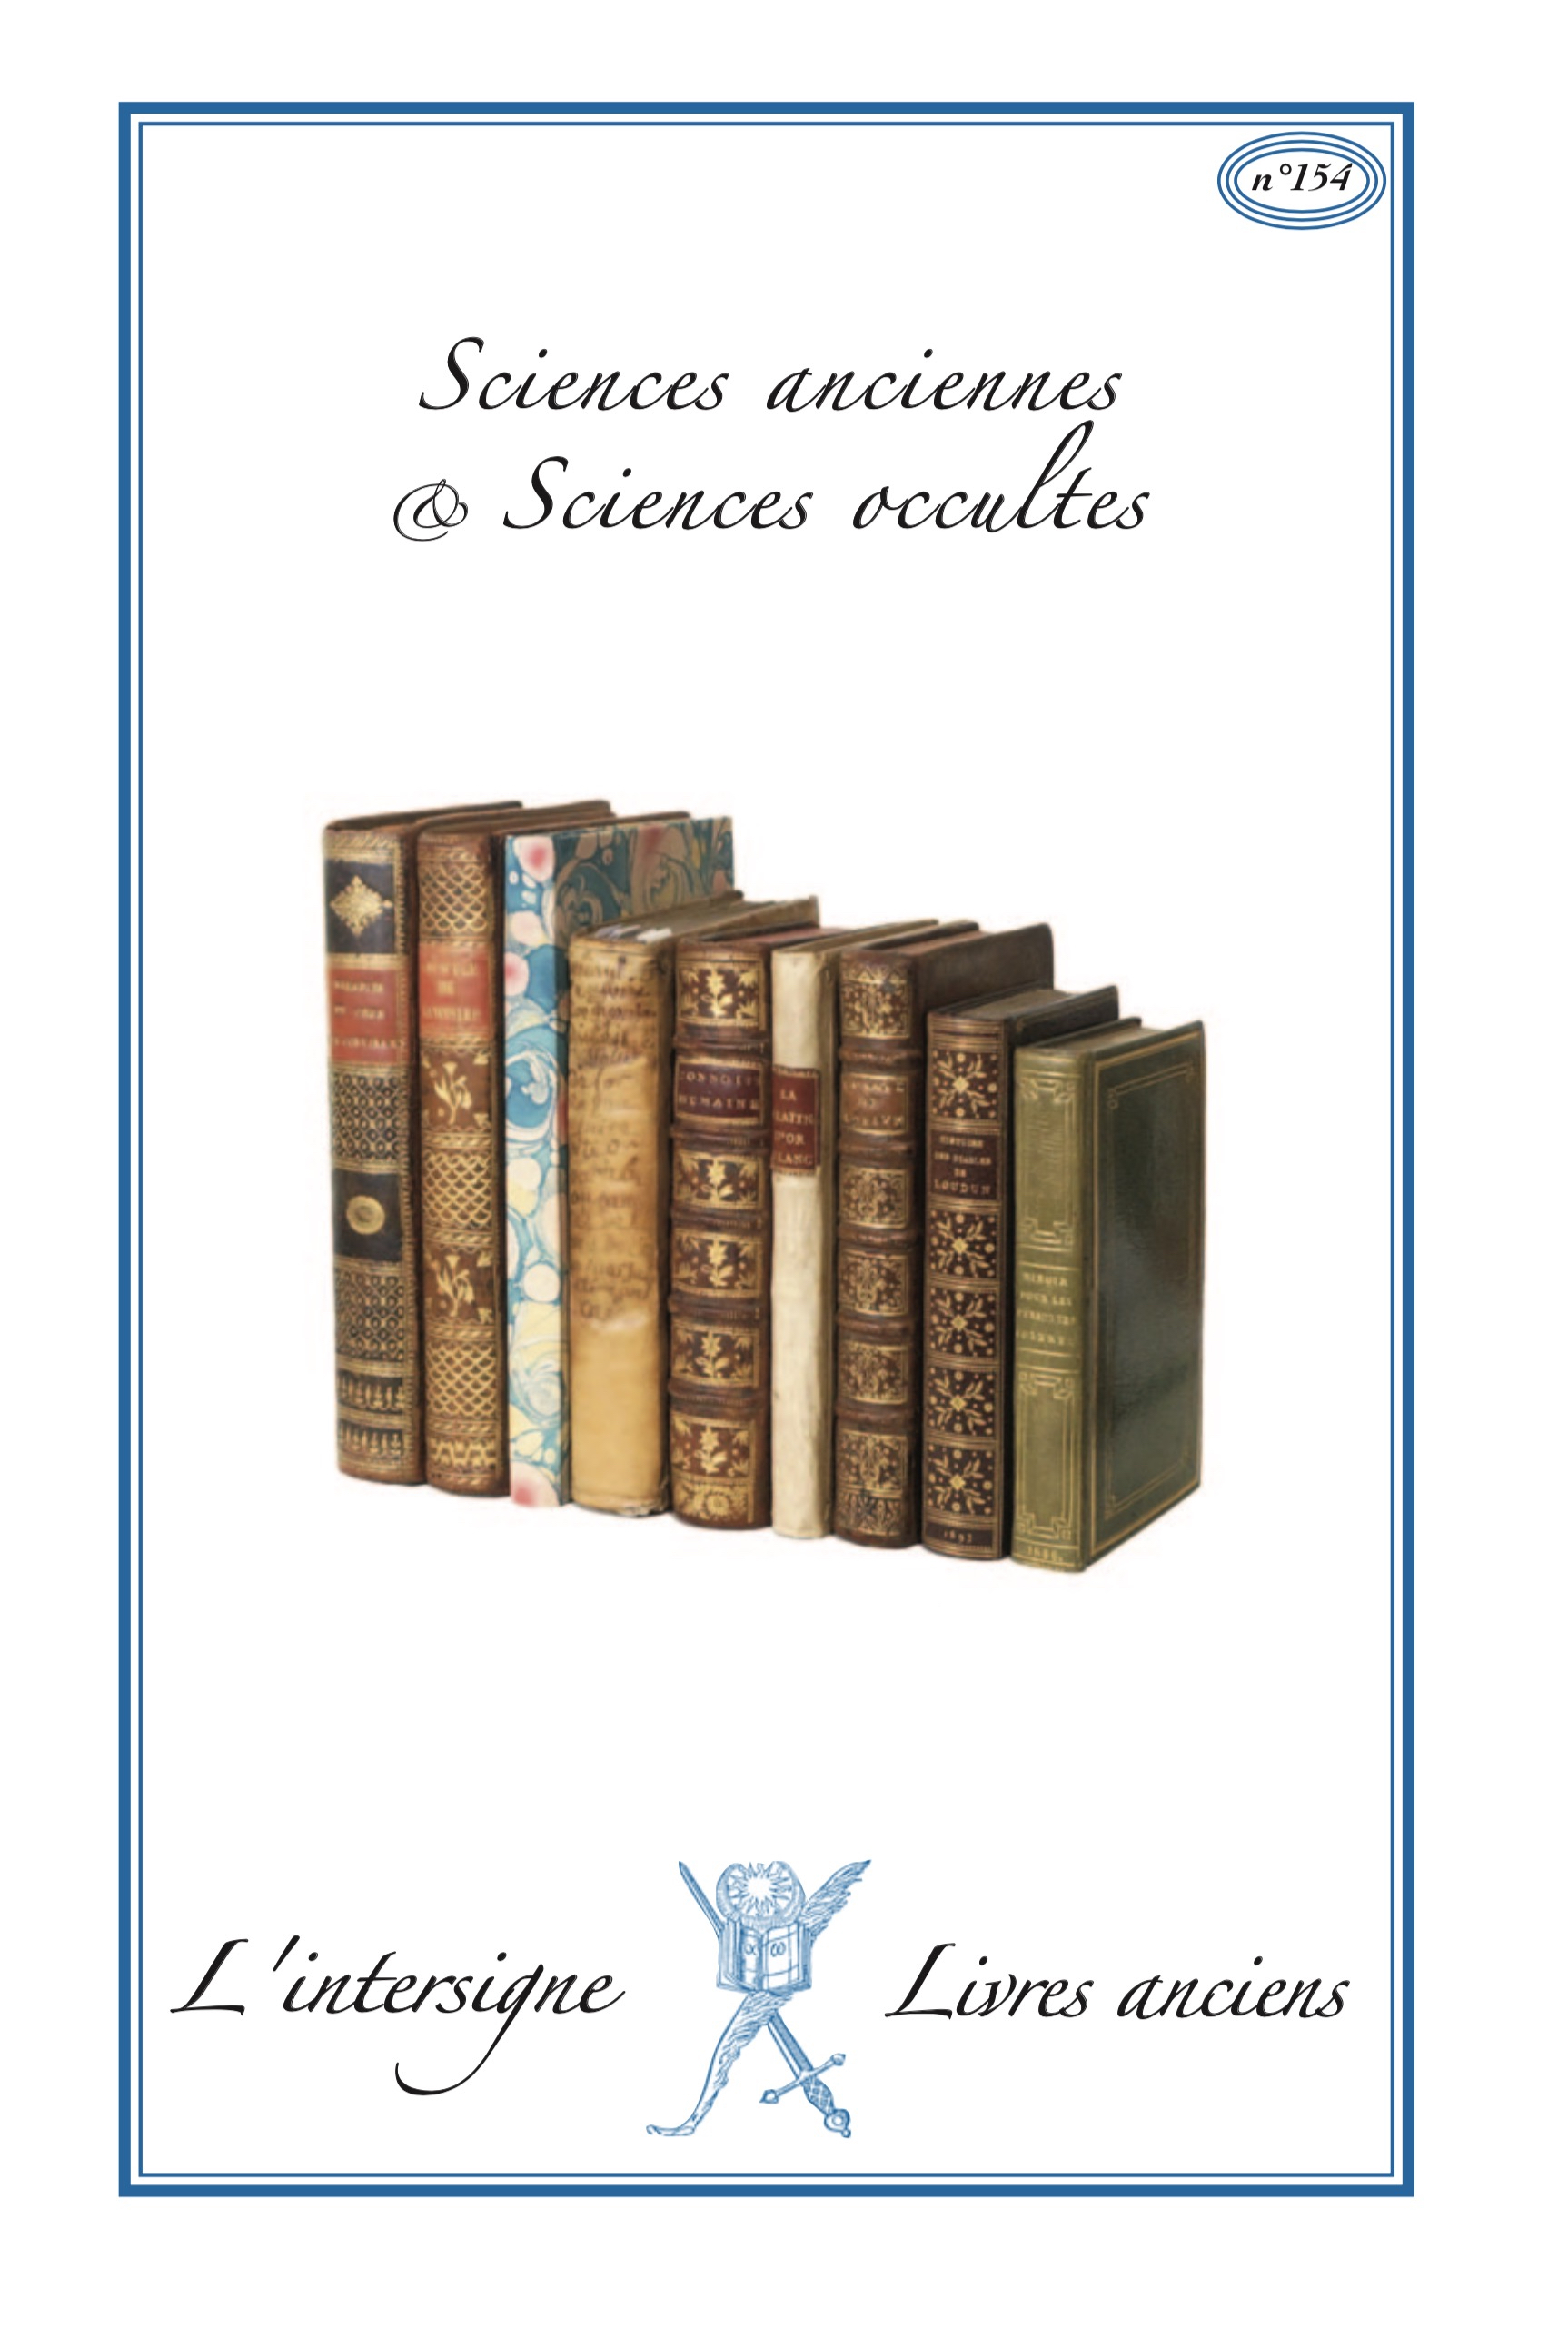 n°154 Sciences anciennes & occultes